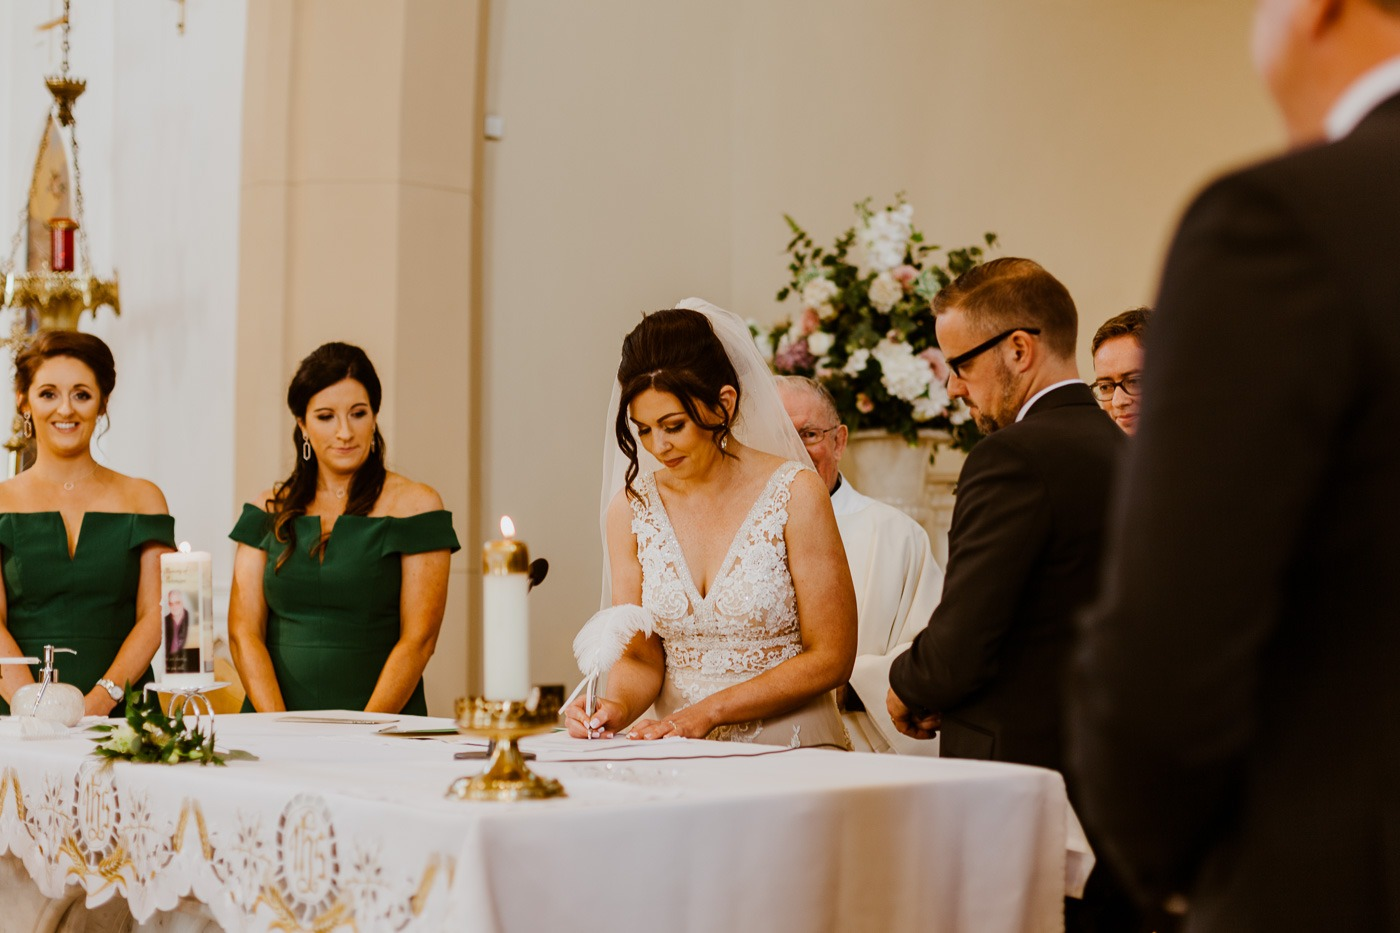 A group of people sitting at a table with a cake